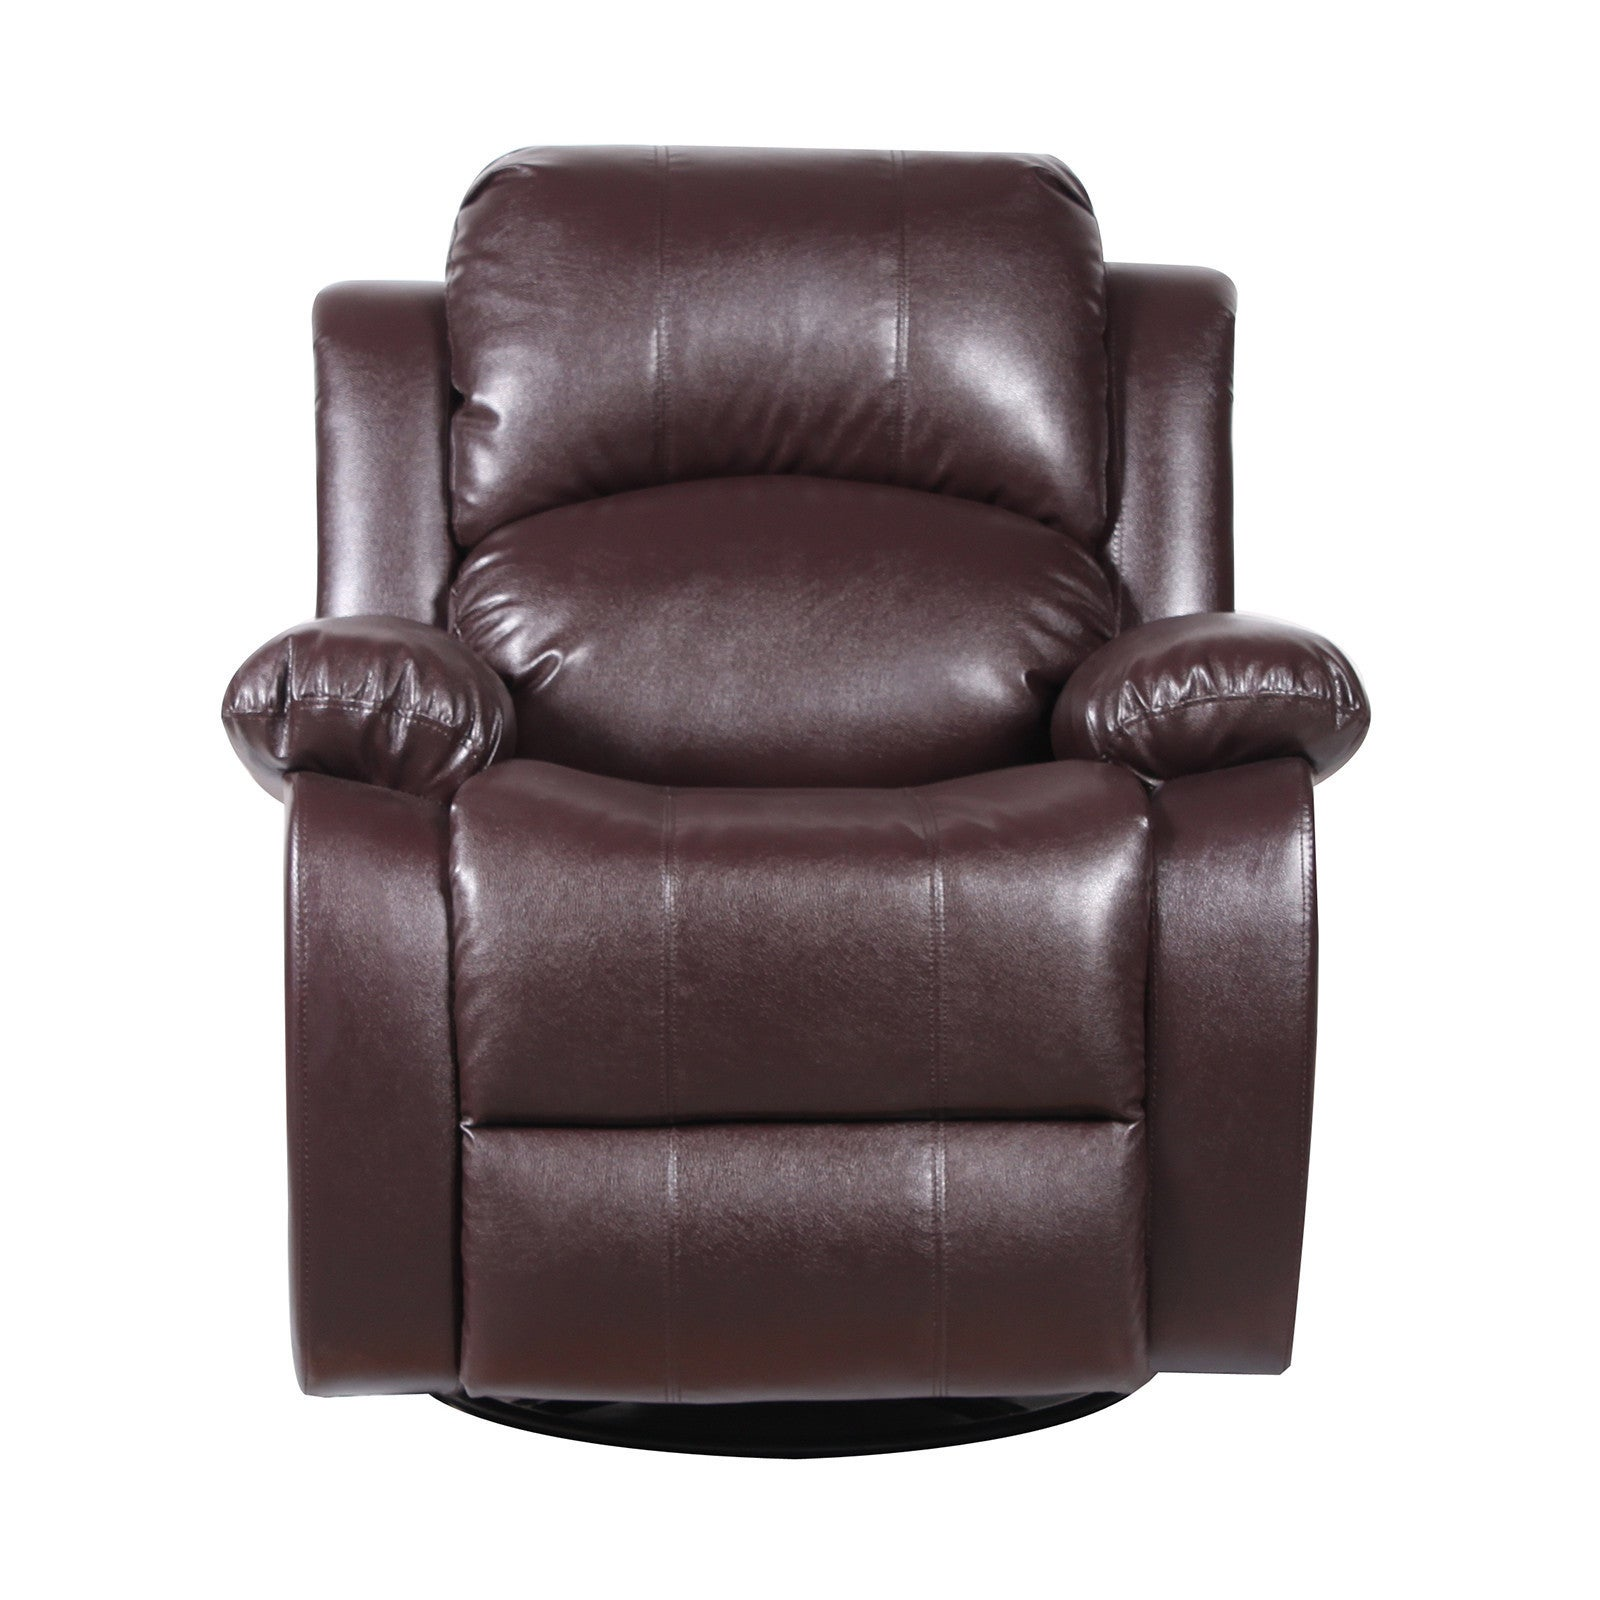 bonded leather rocker and swivel recliner living room chair brown ebay. Black Bedroom Furniture Sets. Home Design Ideas